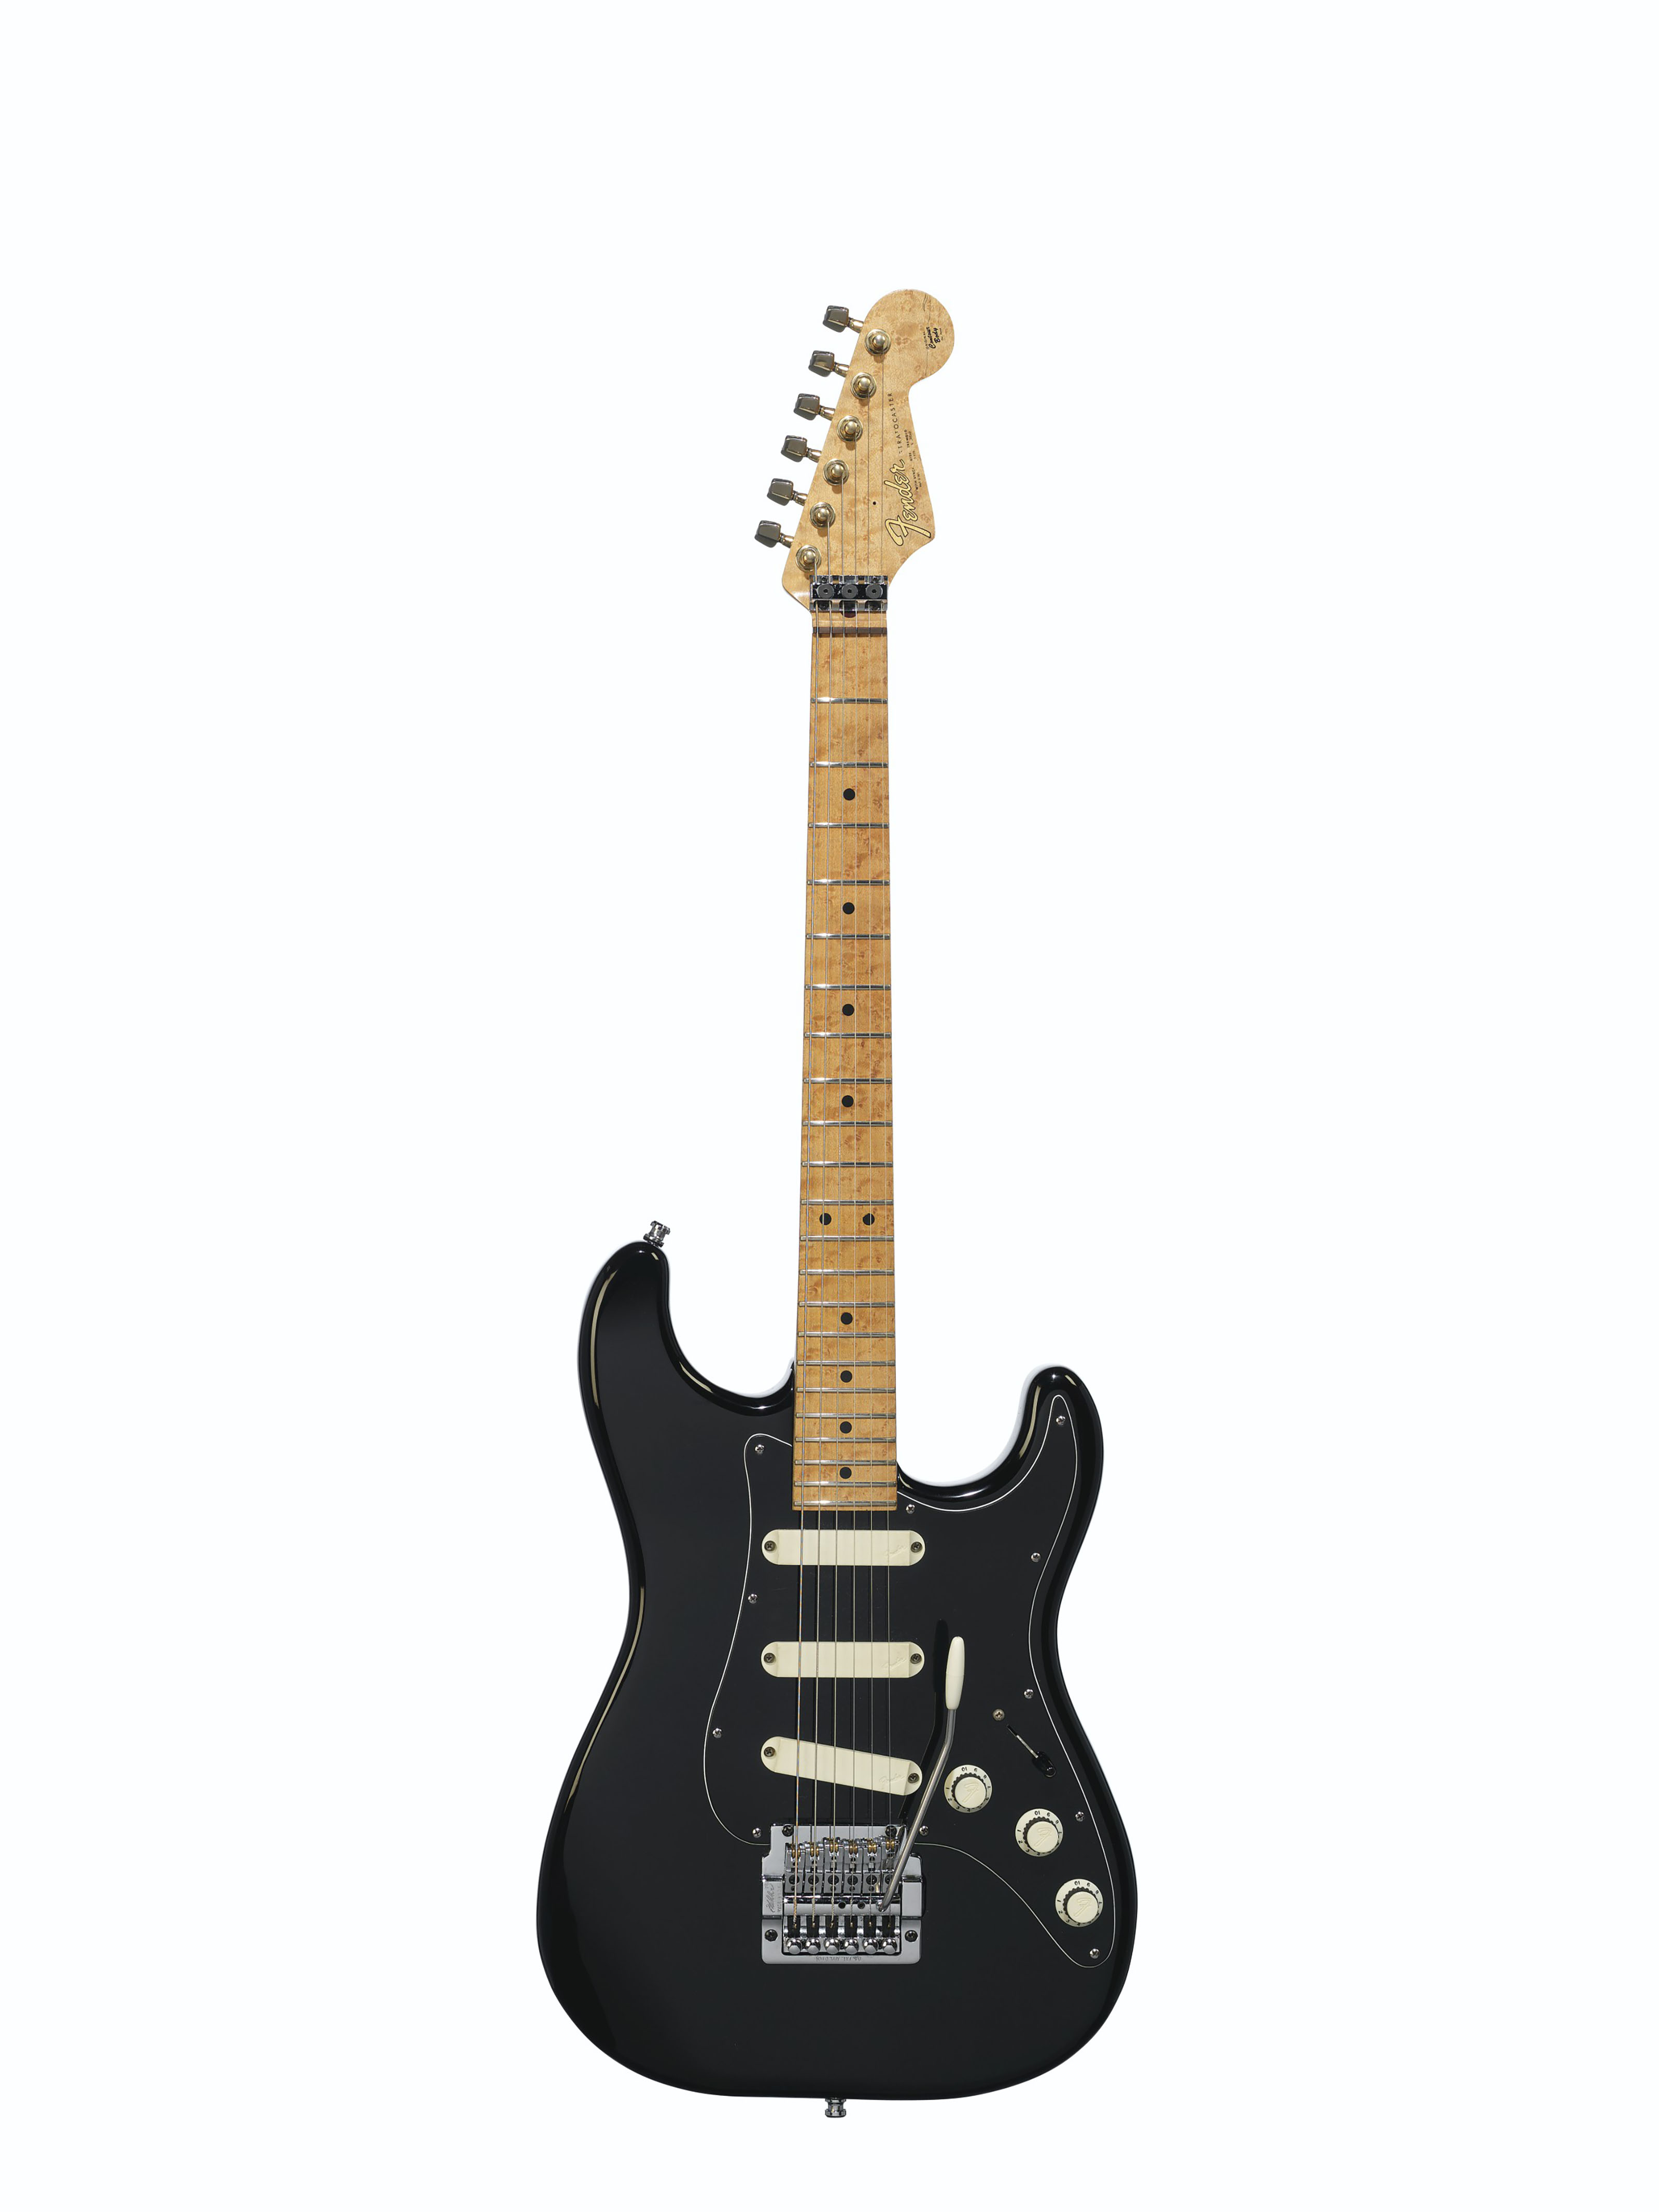 FENDER ELECTRIC INSTRUMENT COMPANY, FULLERTON, CIRCA 1984 AND CHARVEL GUITARS